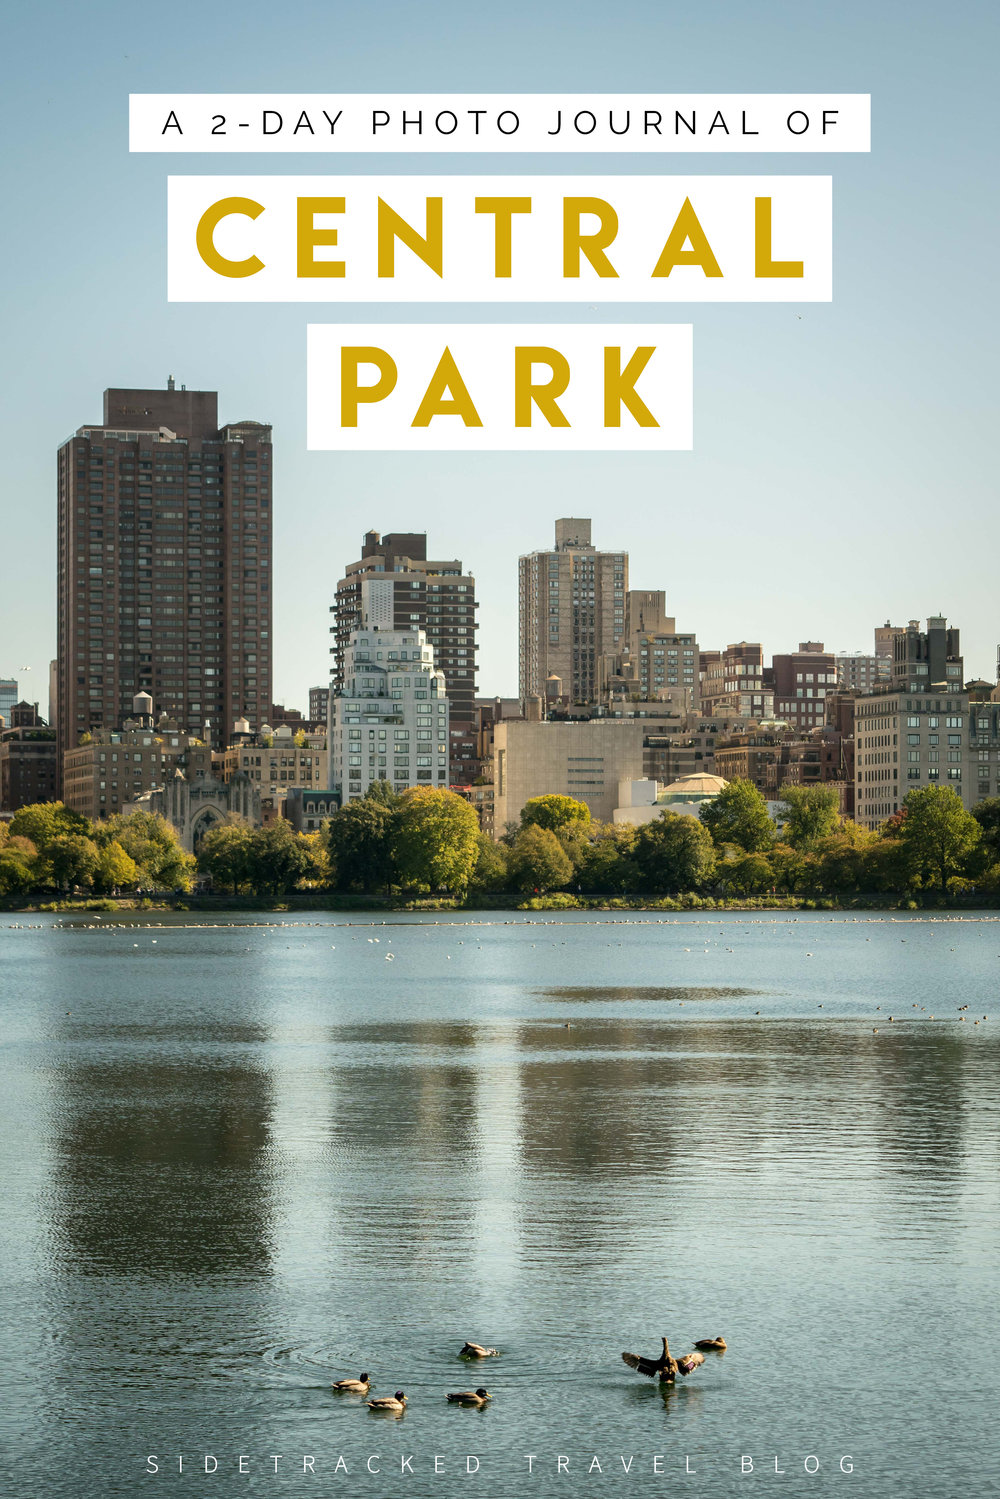 This 2-day visual guide highlights some of the top sites and attractions in and around Central Park, New York City.